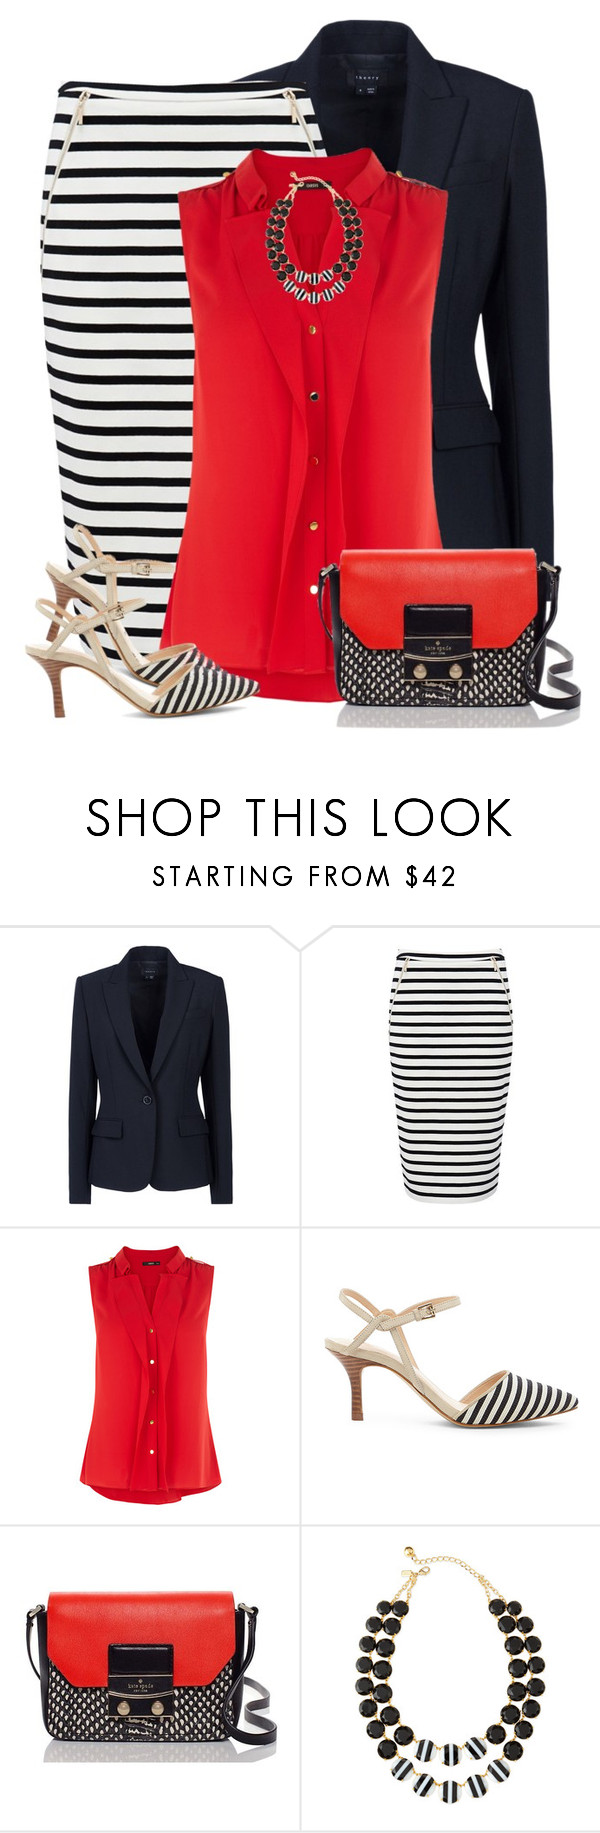 """Matching Skirt & Shoes"" by daiscat ❤ liked on Polyvore featuring Theory, Forever New, Oasis, Sole Society and Kate Spade"